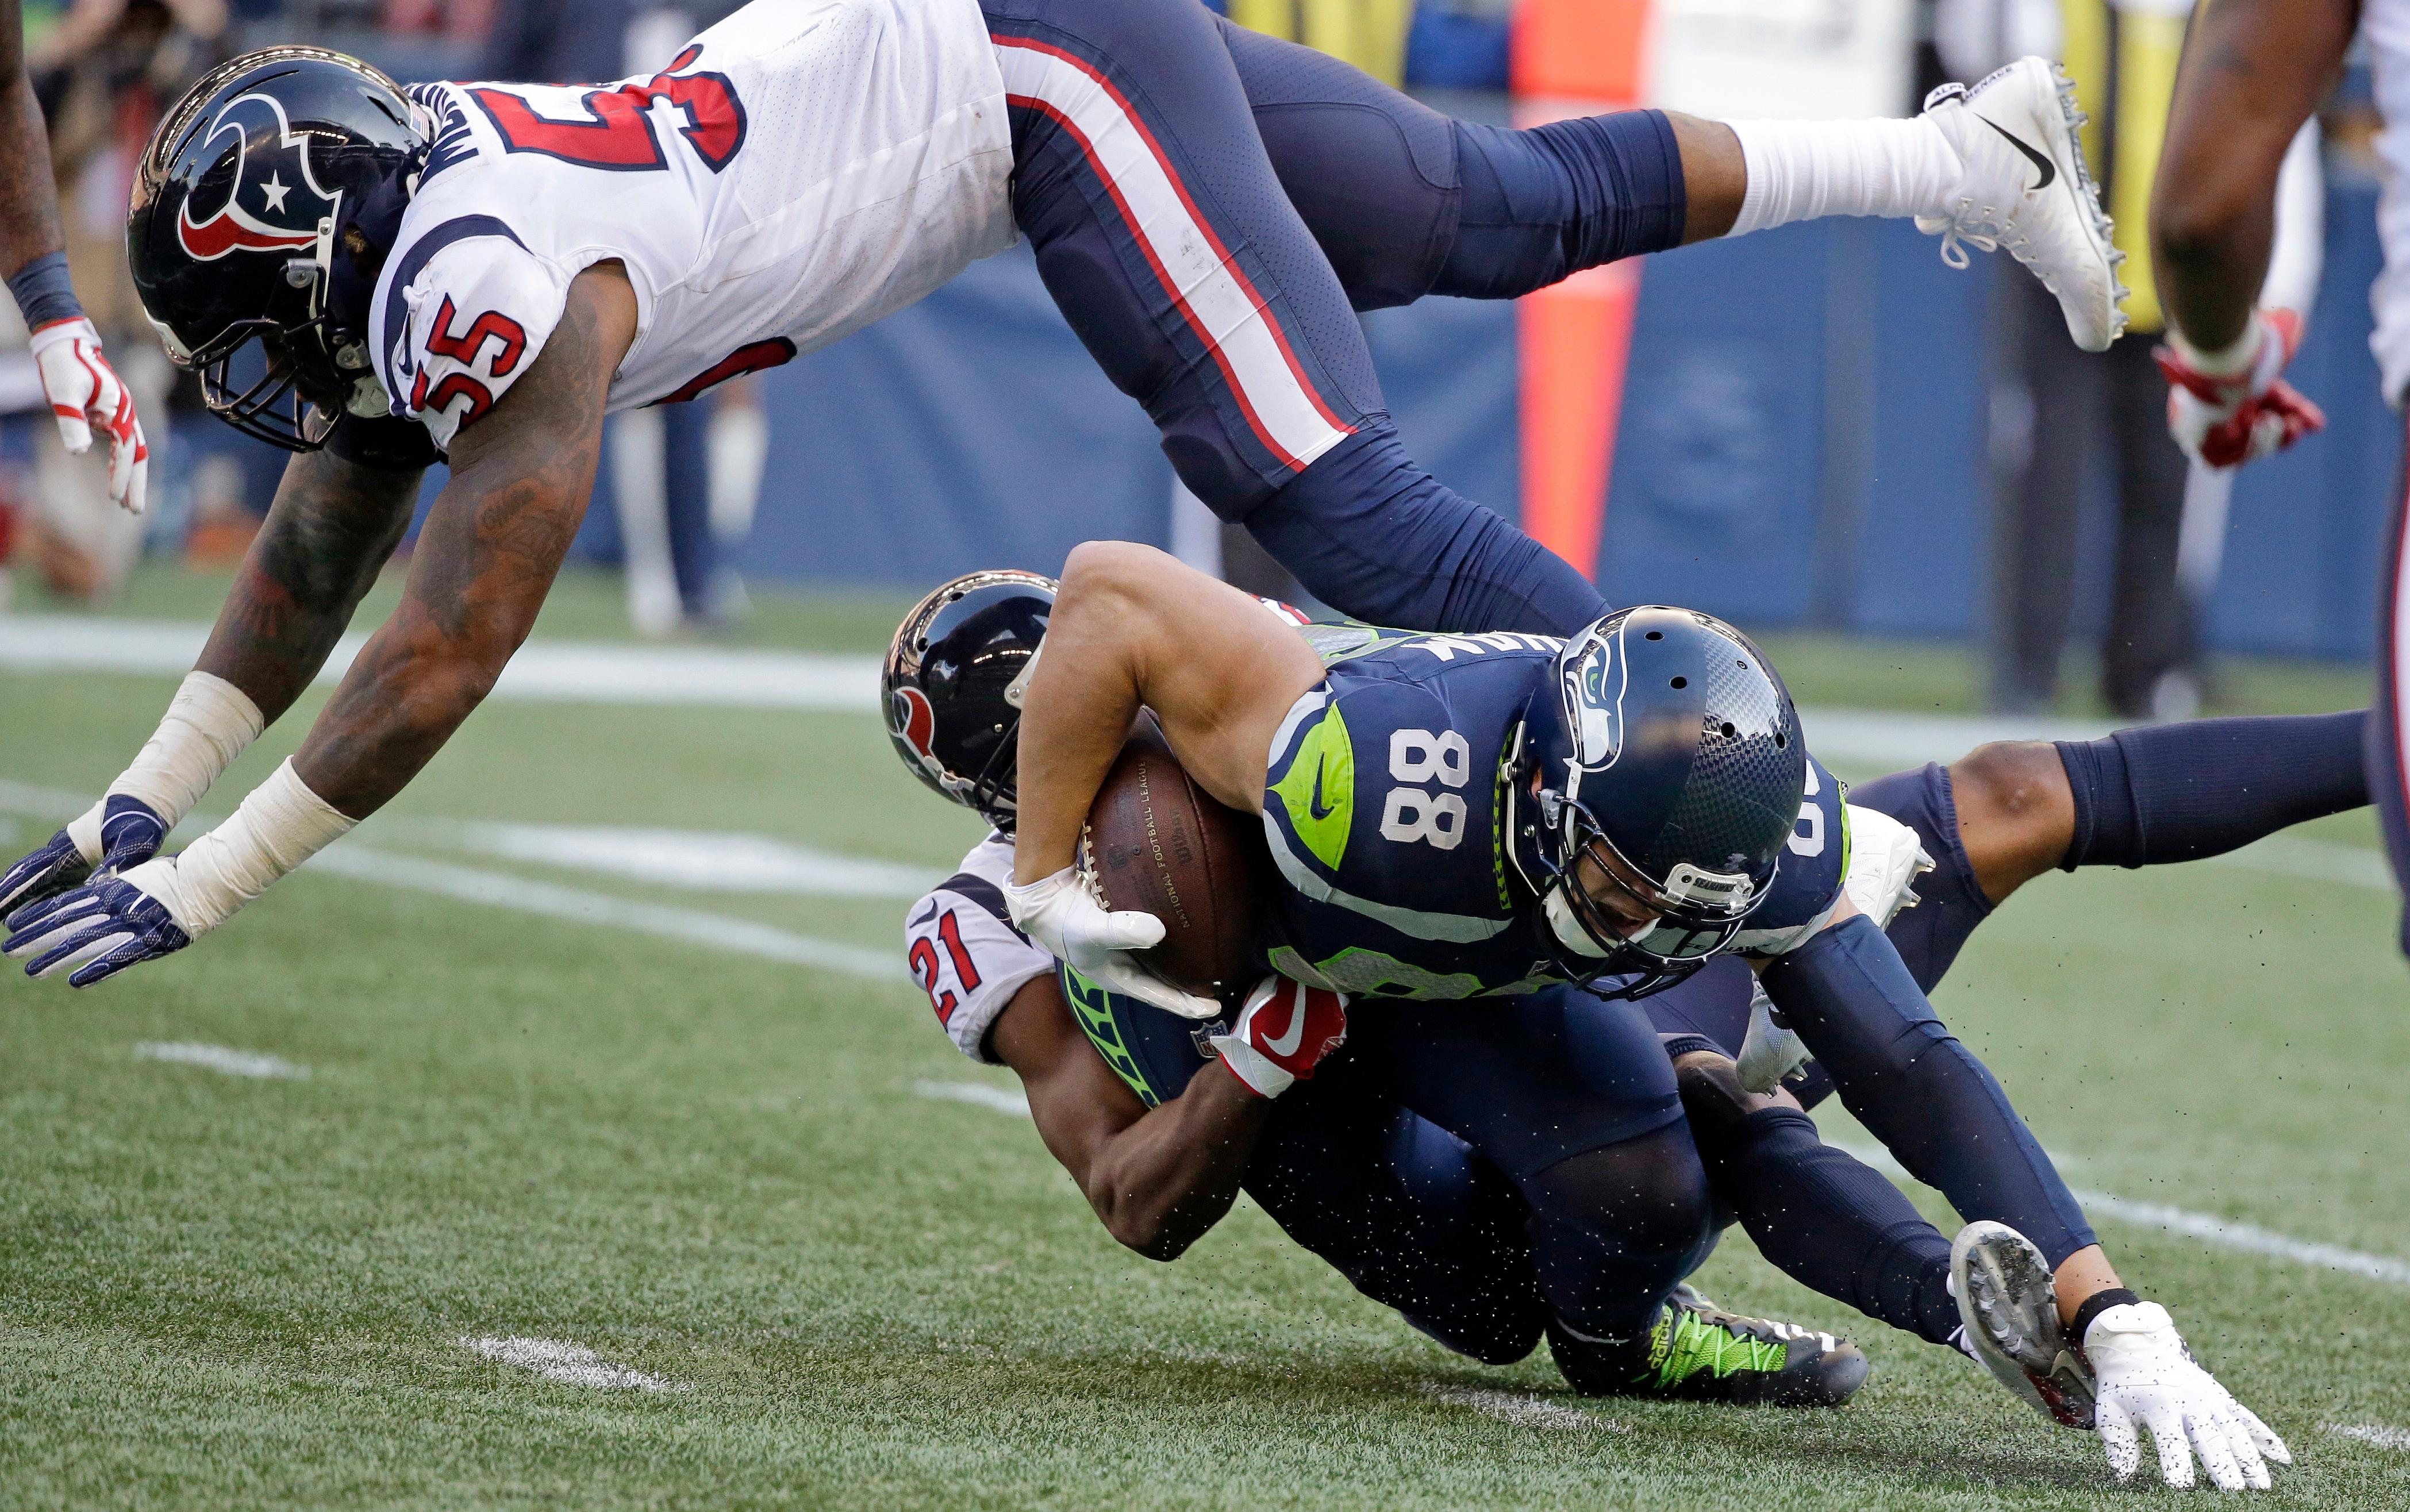 Seattle Seahawks tight end Jimmy Graham (88) is tackled by Houston Texans strong safety Marcus Gilchrist (21) as Texans inside linebacker Benardrick McKinney (55) leaps over them in the second half of an NFL football game, Sunday, Oct. 29, 2017, in Seattle. (AP Photo/Elaine Thompson)